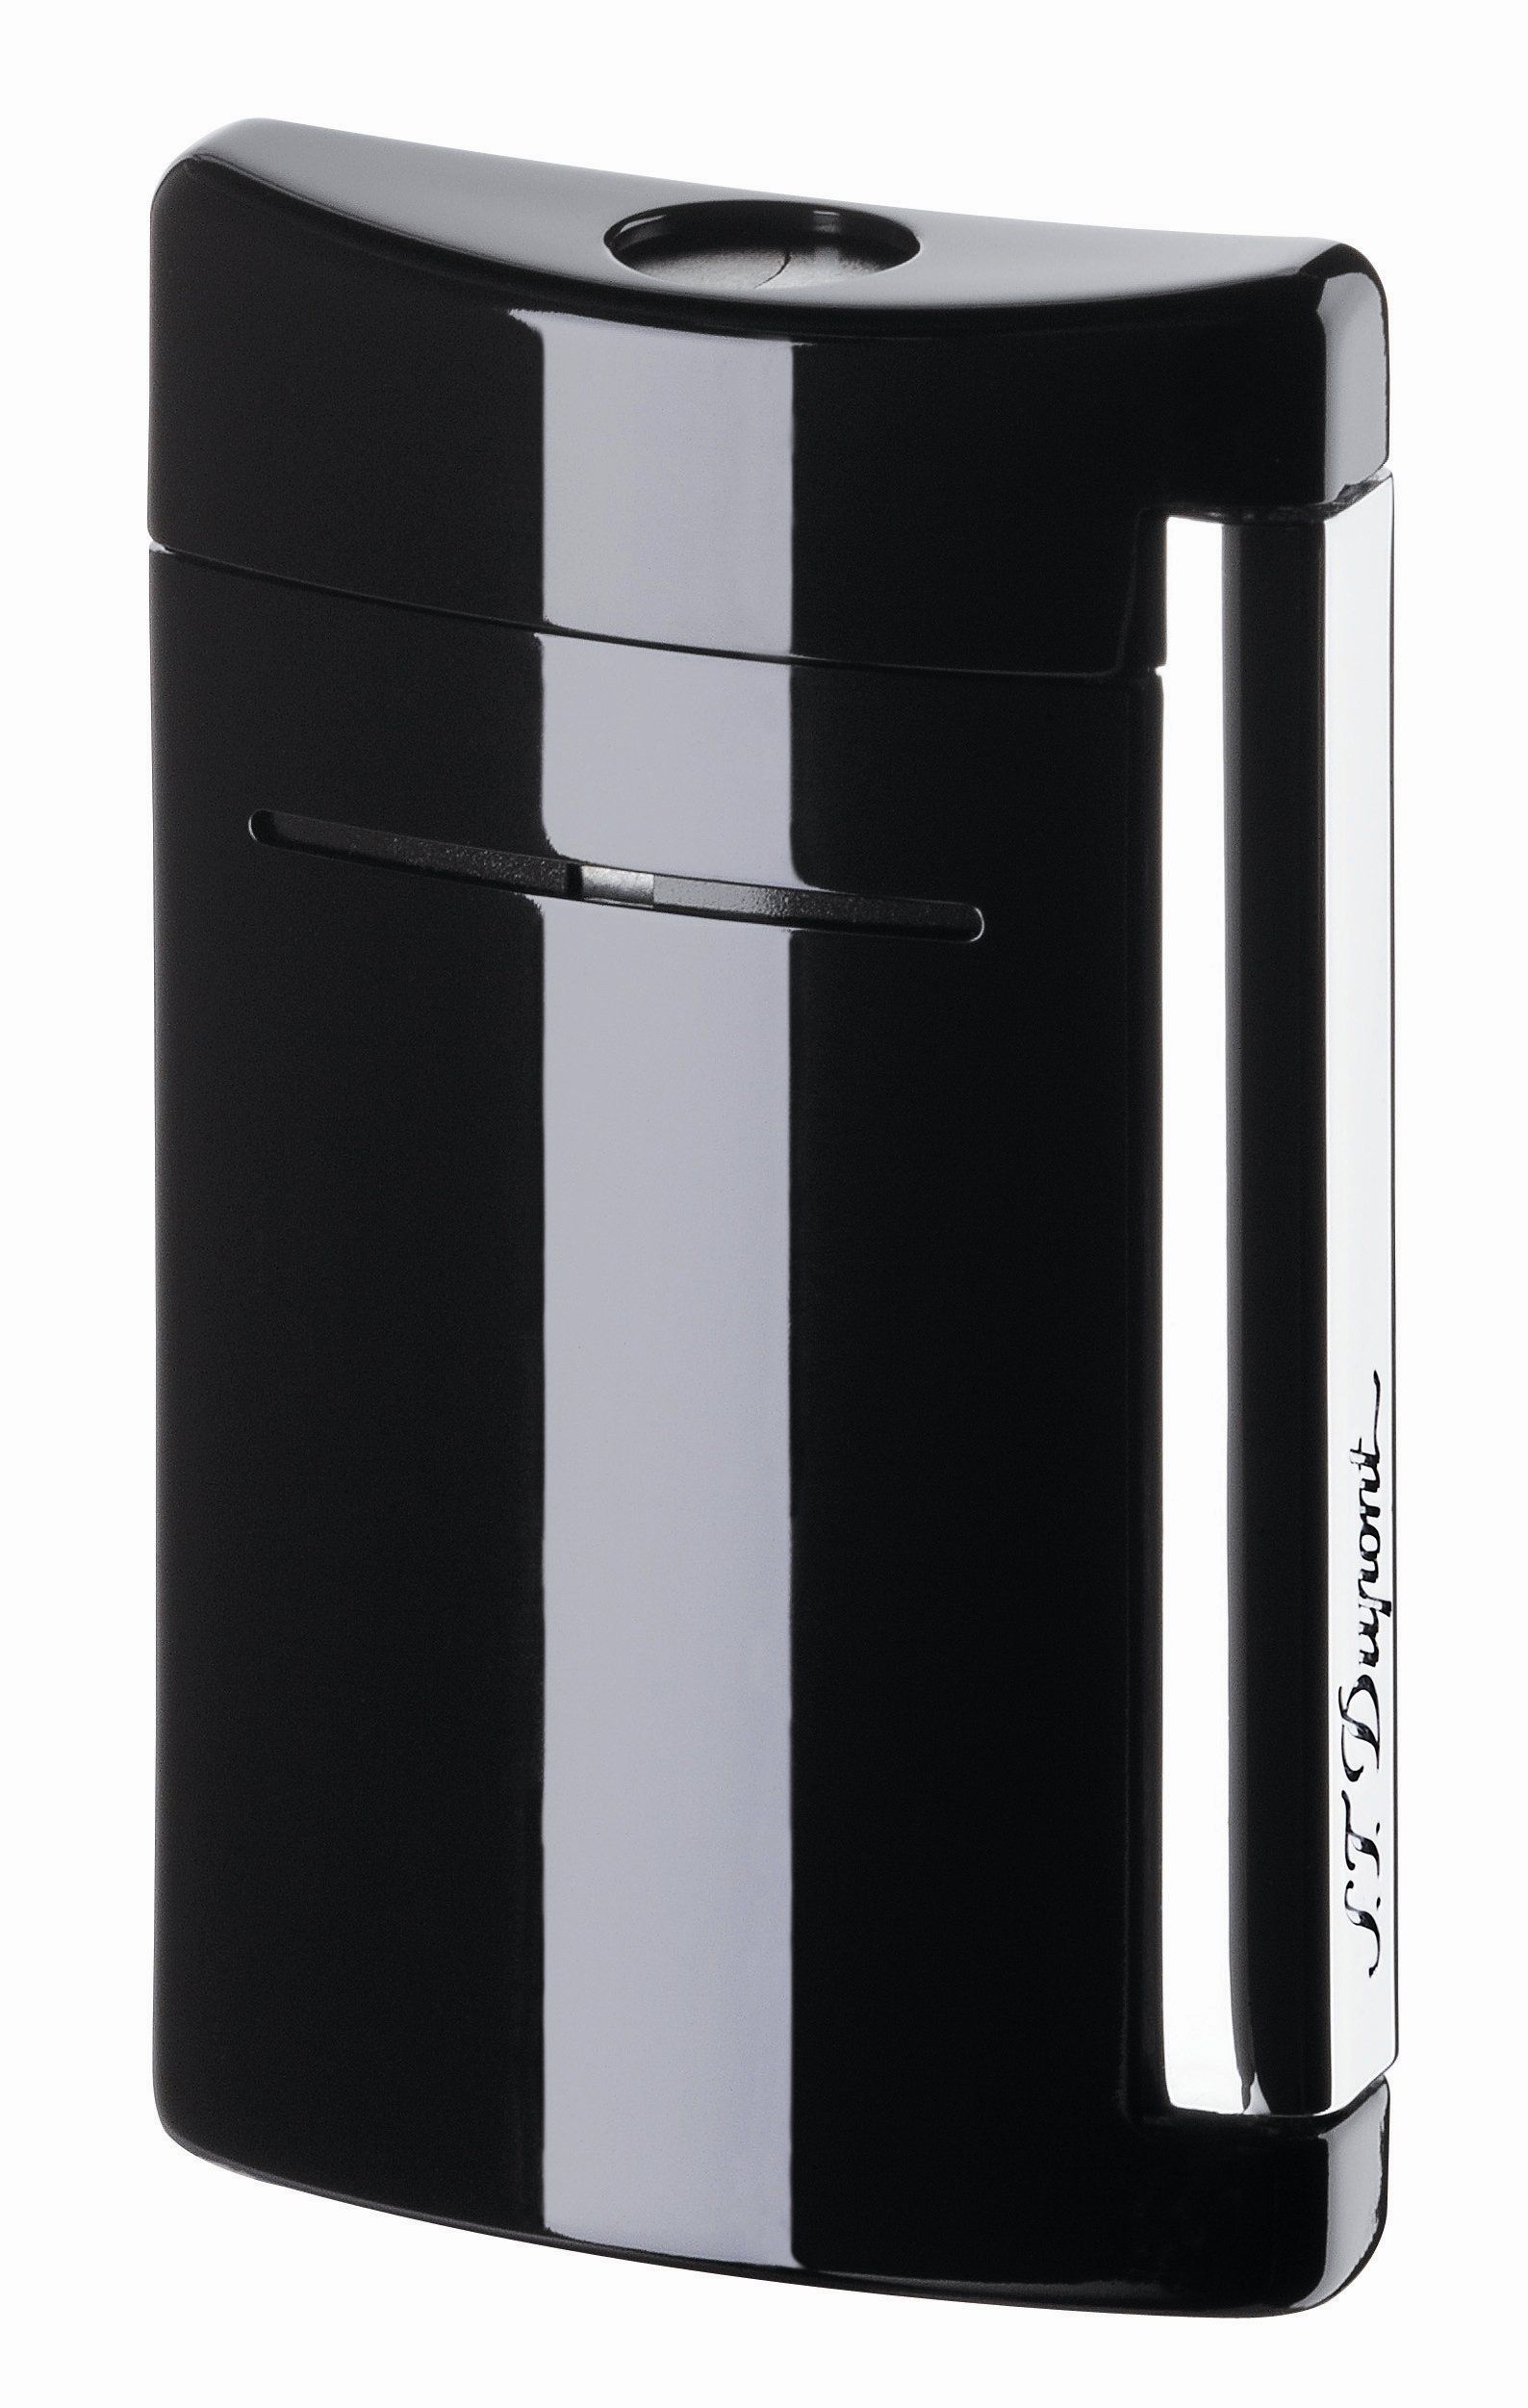 ST Dupont MiniJet Black As Night Torch Flame Lighter by S.T. Dupont (Image #1)